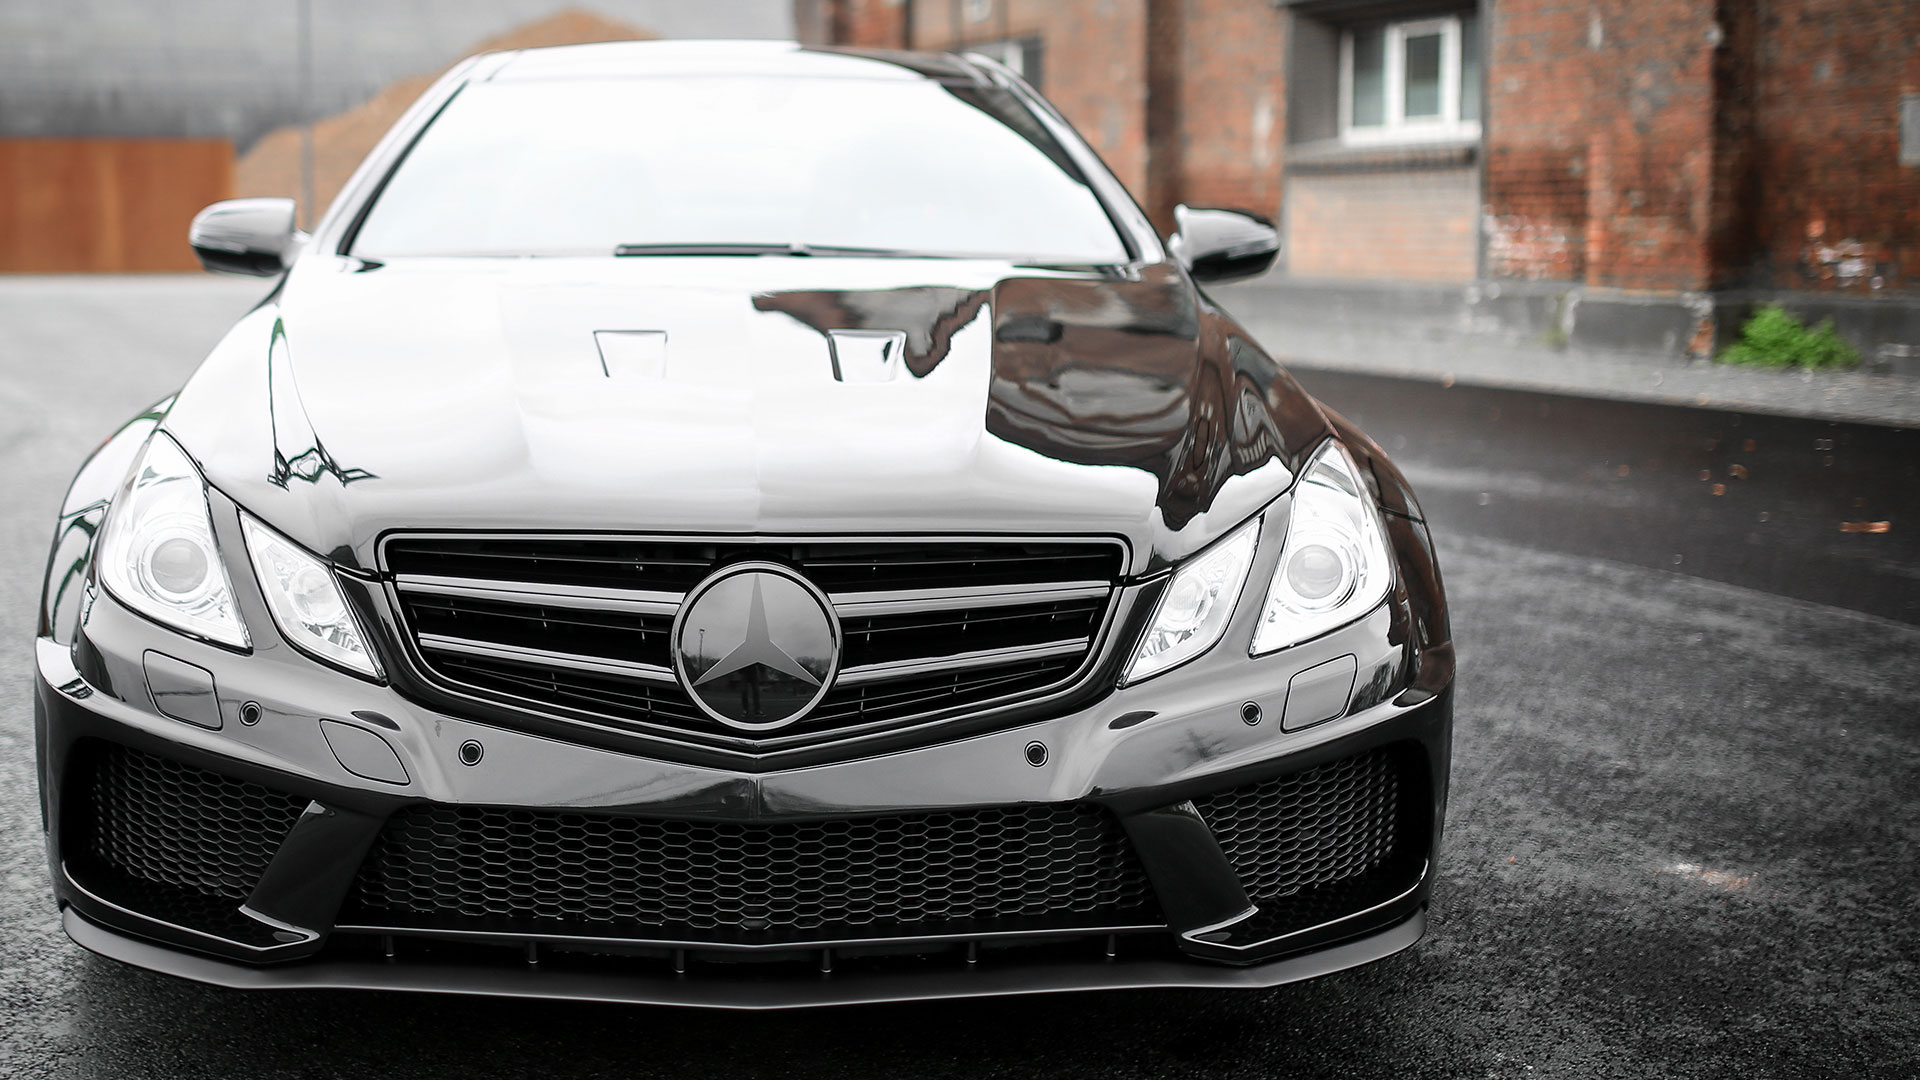 Mercedes E 500 V8 Coupe C207 Tuning Pd850 Black Edition Widebody